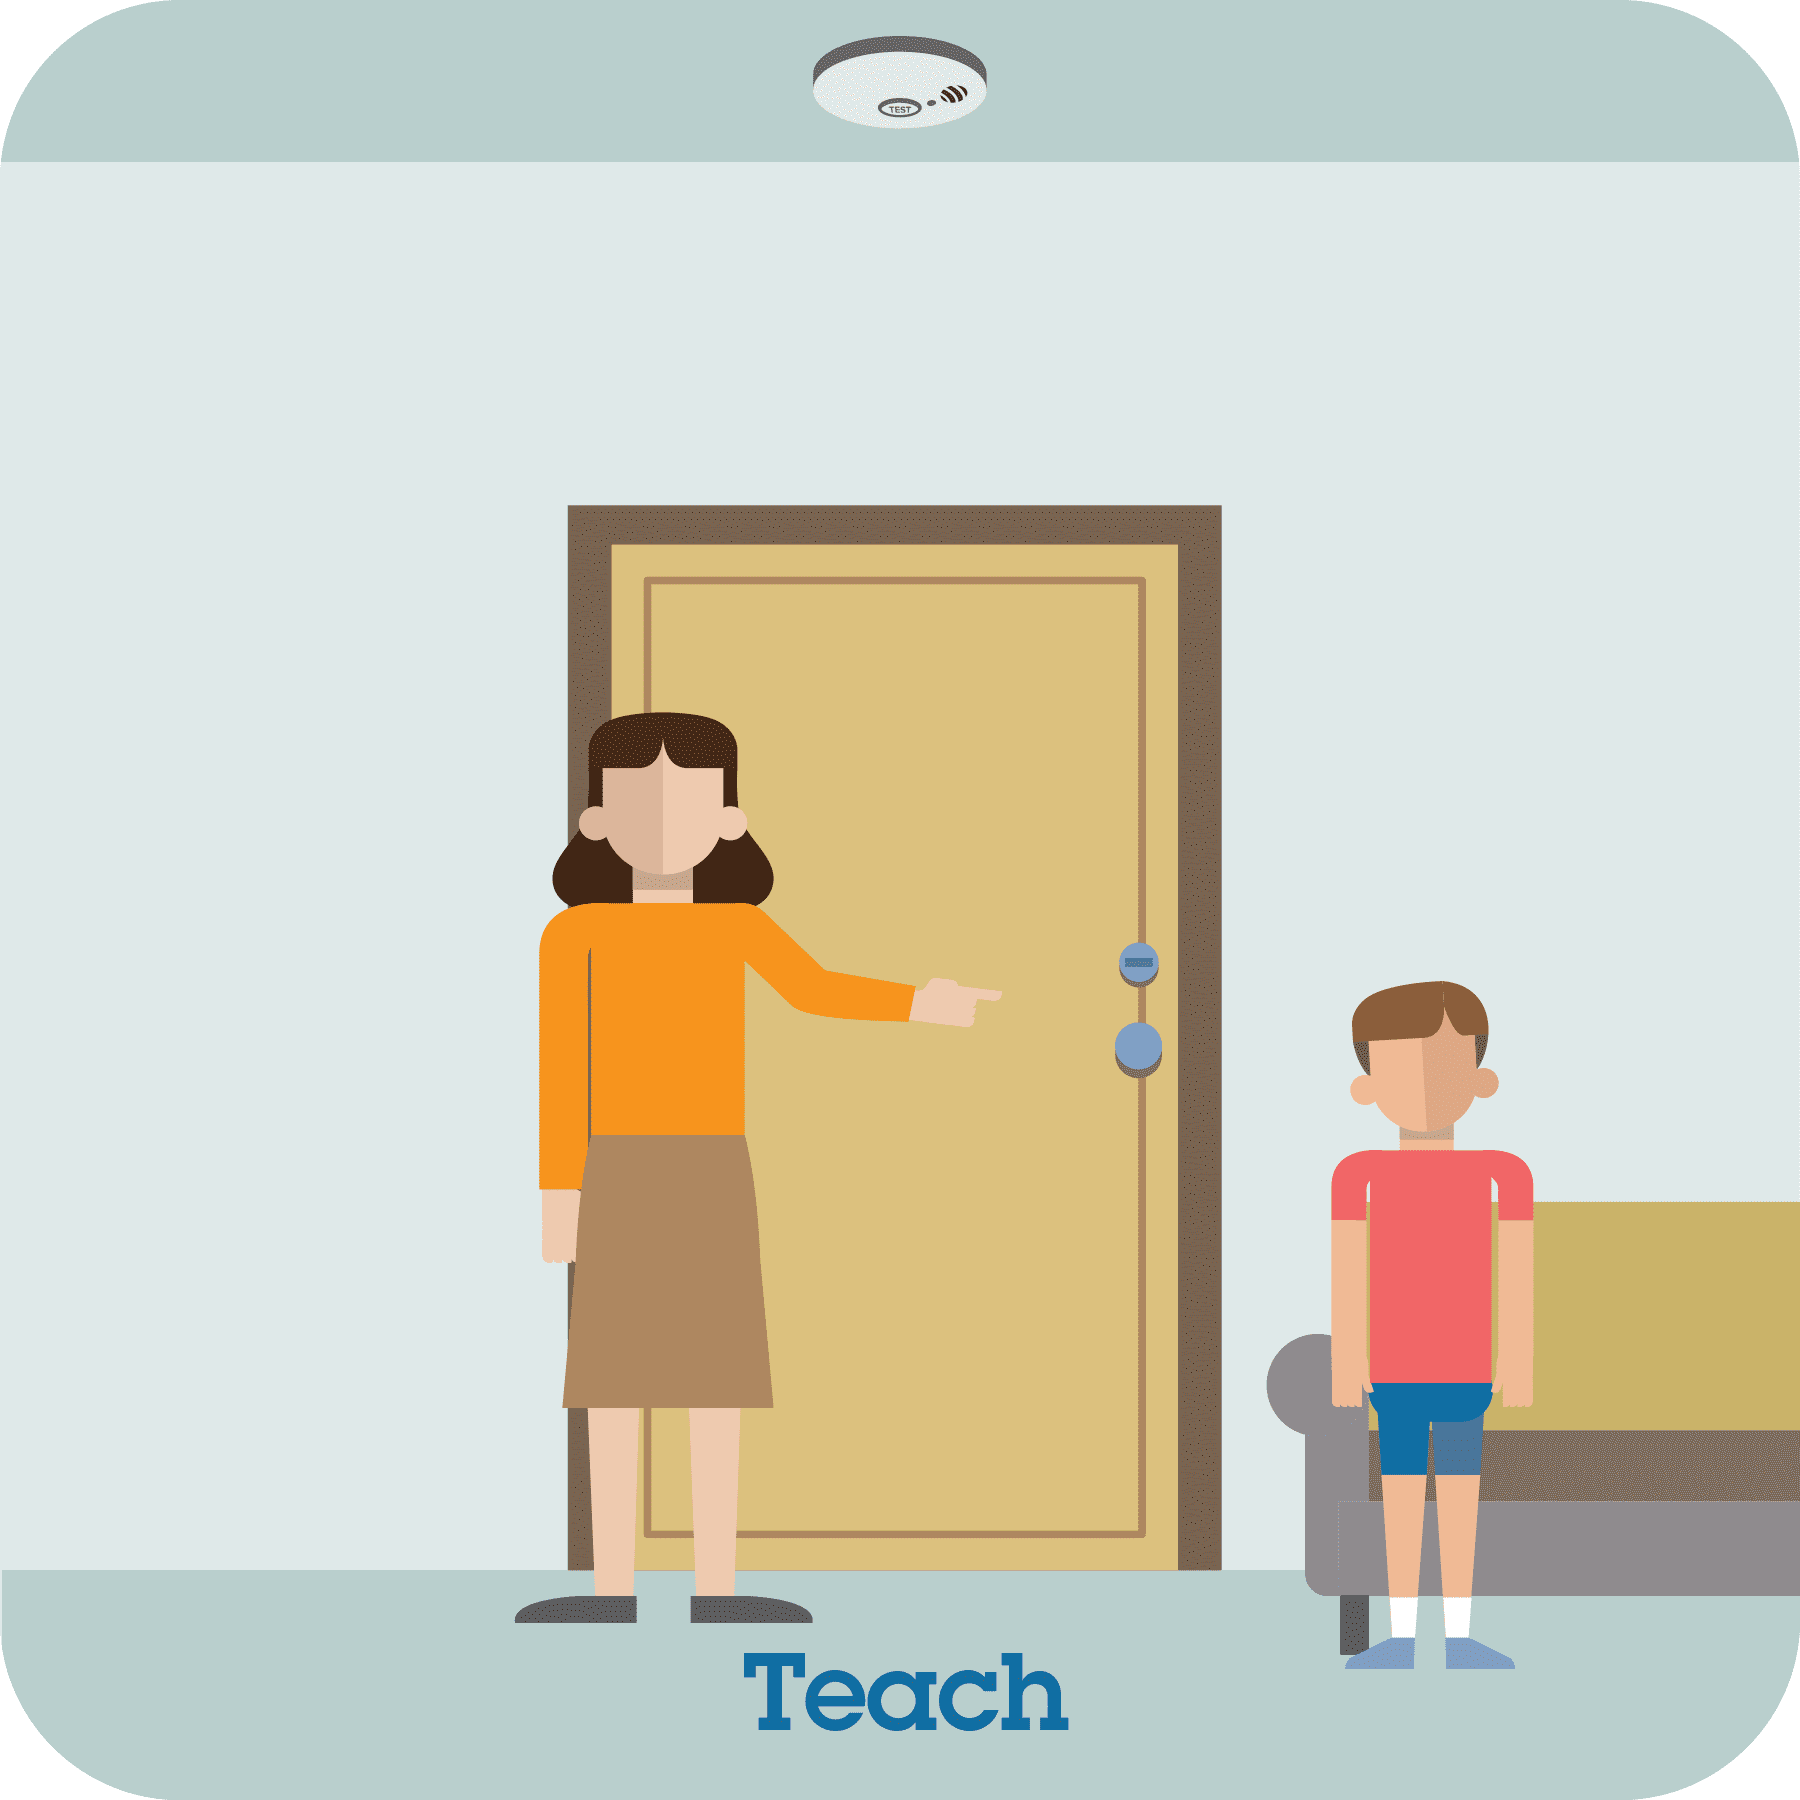 Woman showing boy a locked door. Teach prompt at the bottom of the picture.